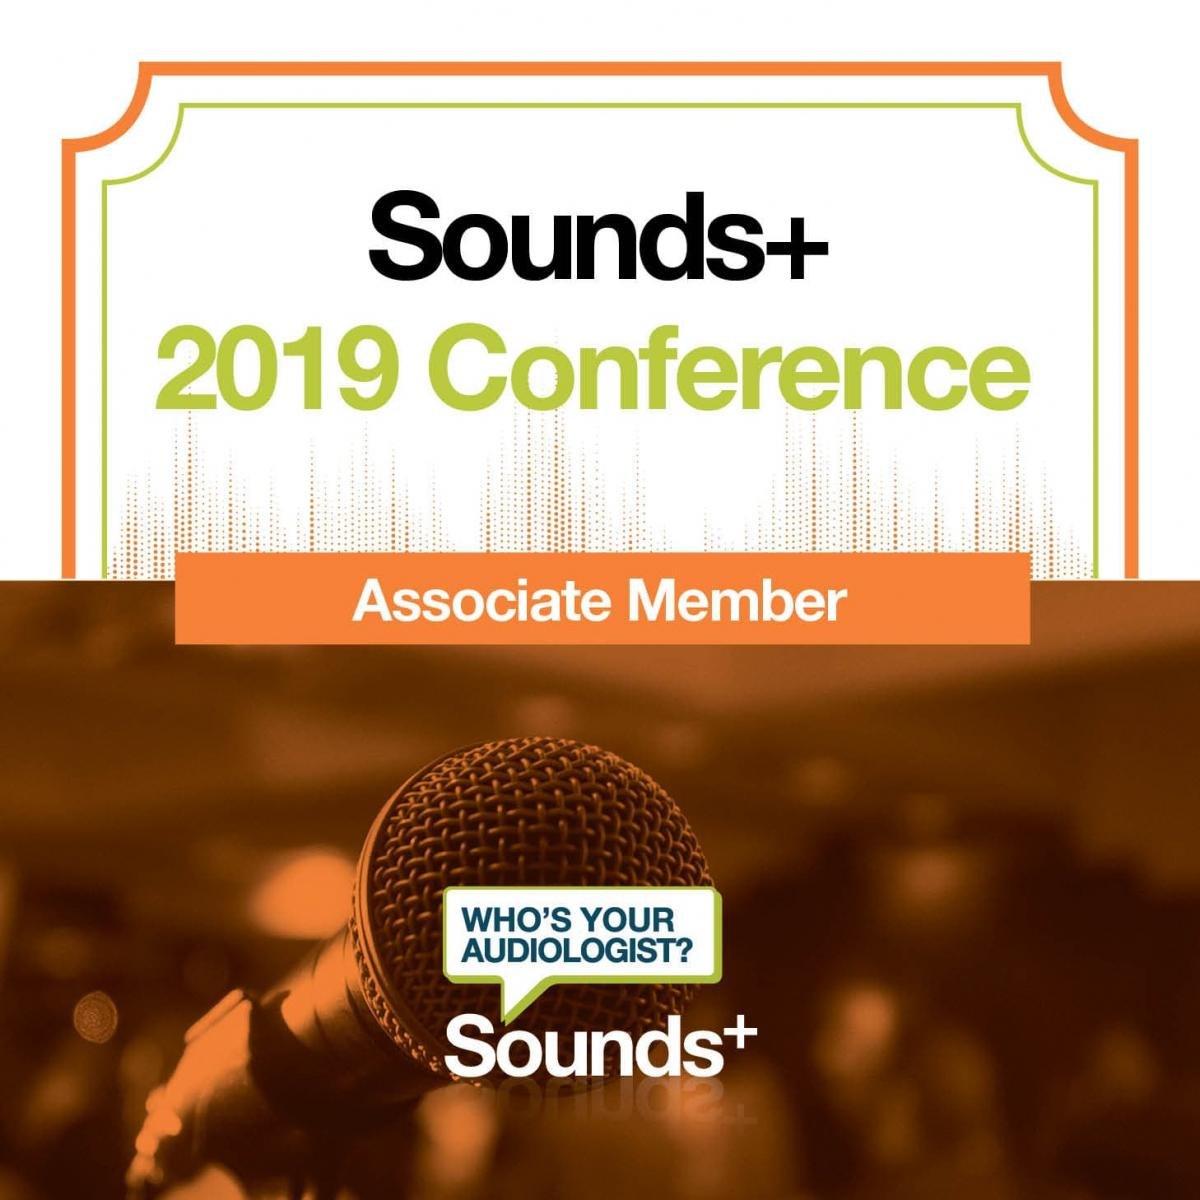 2019 Associate Member Conference Ticket